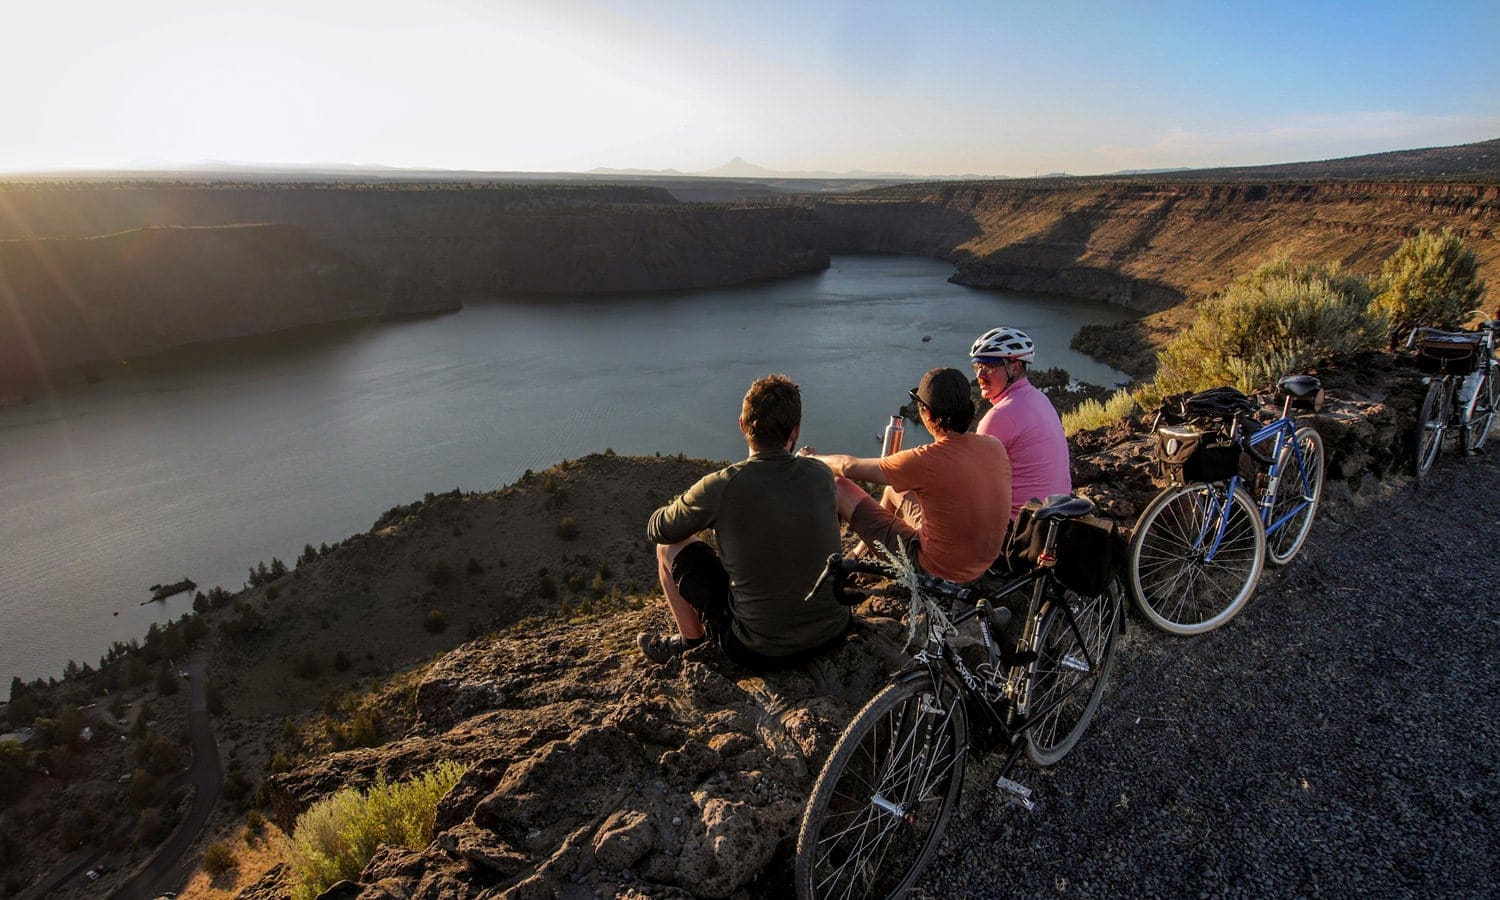 Bicyclists take a break at a rocky overlook above Lake Billy Chinook on the Madras Mountain Views Scenic Bikeway